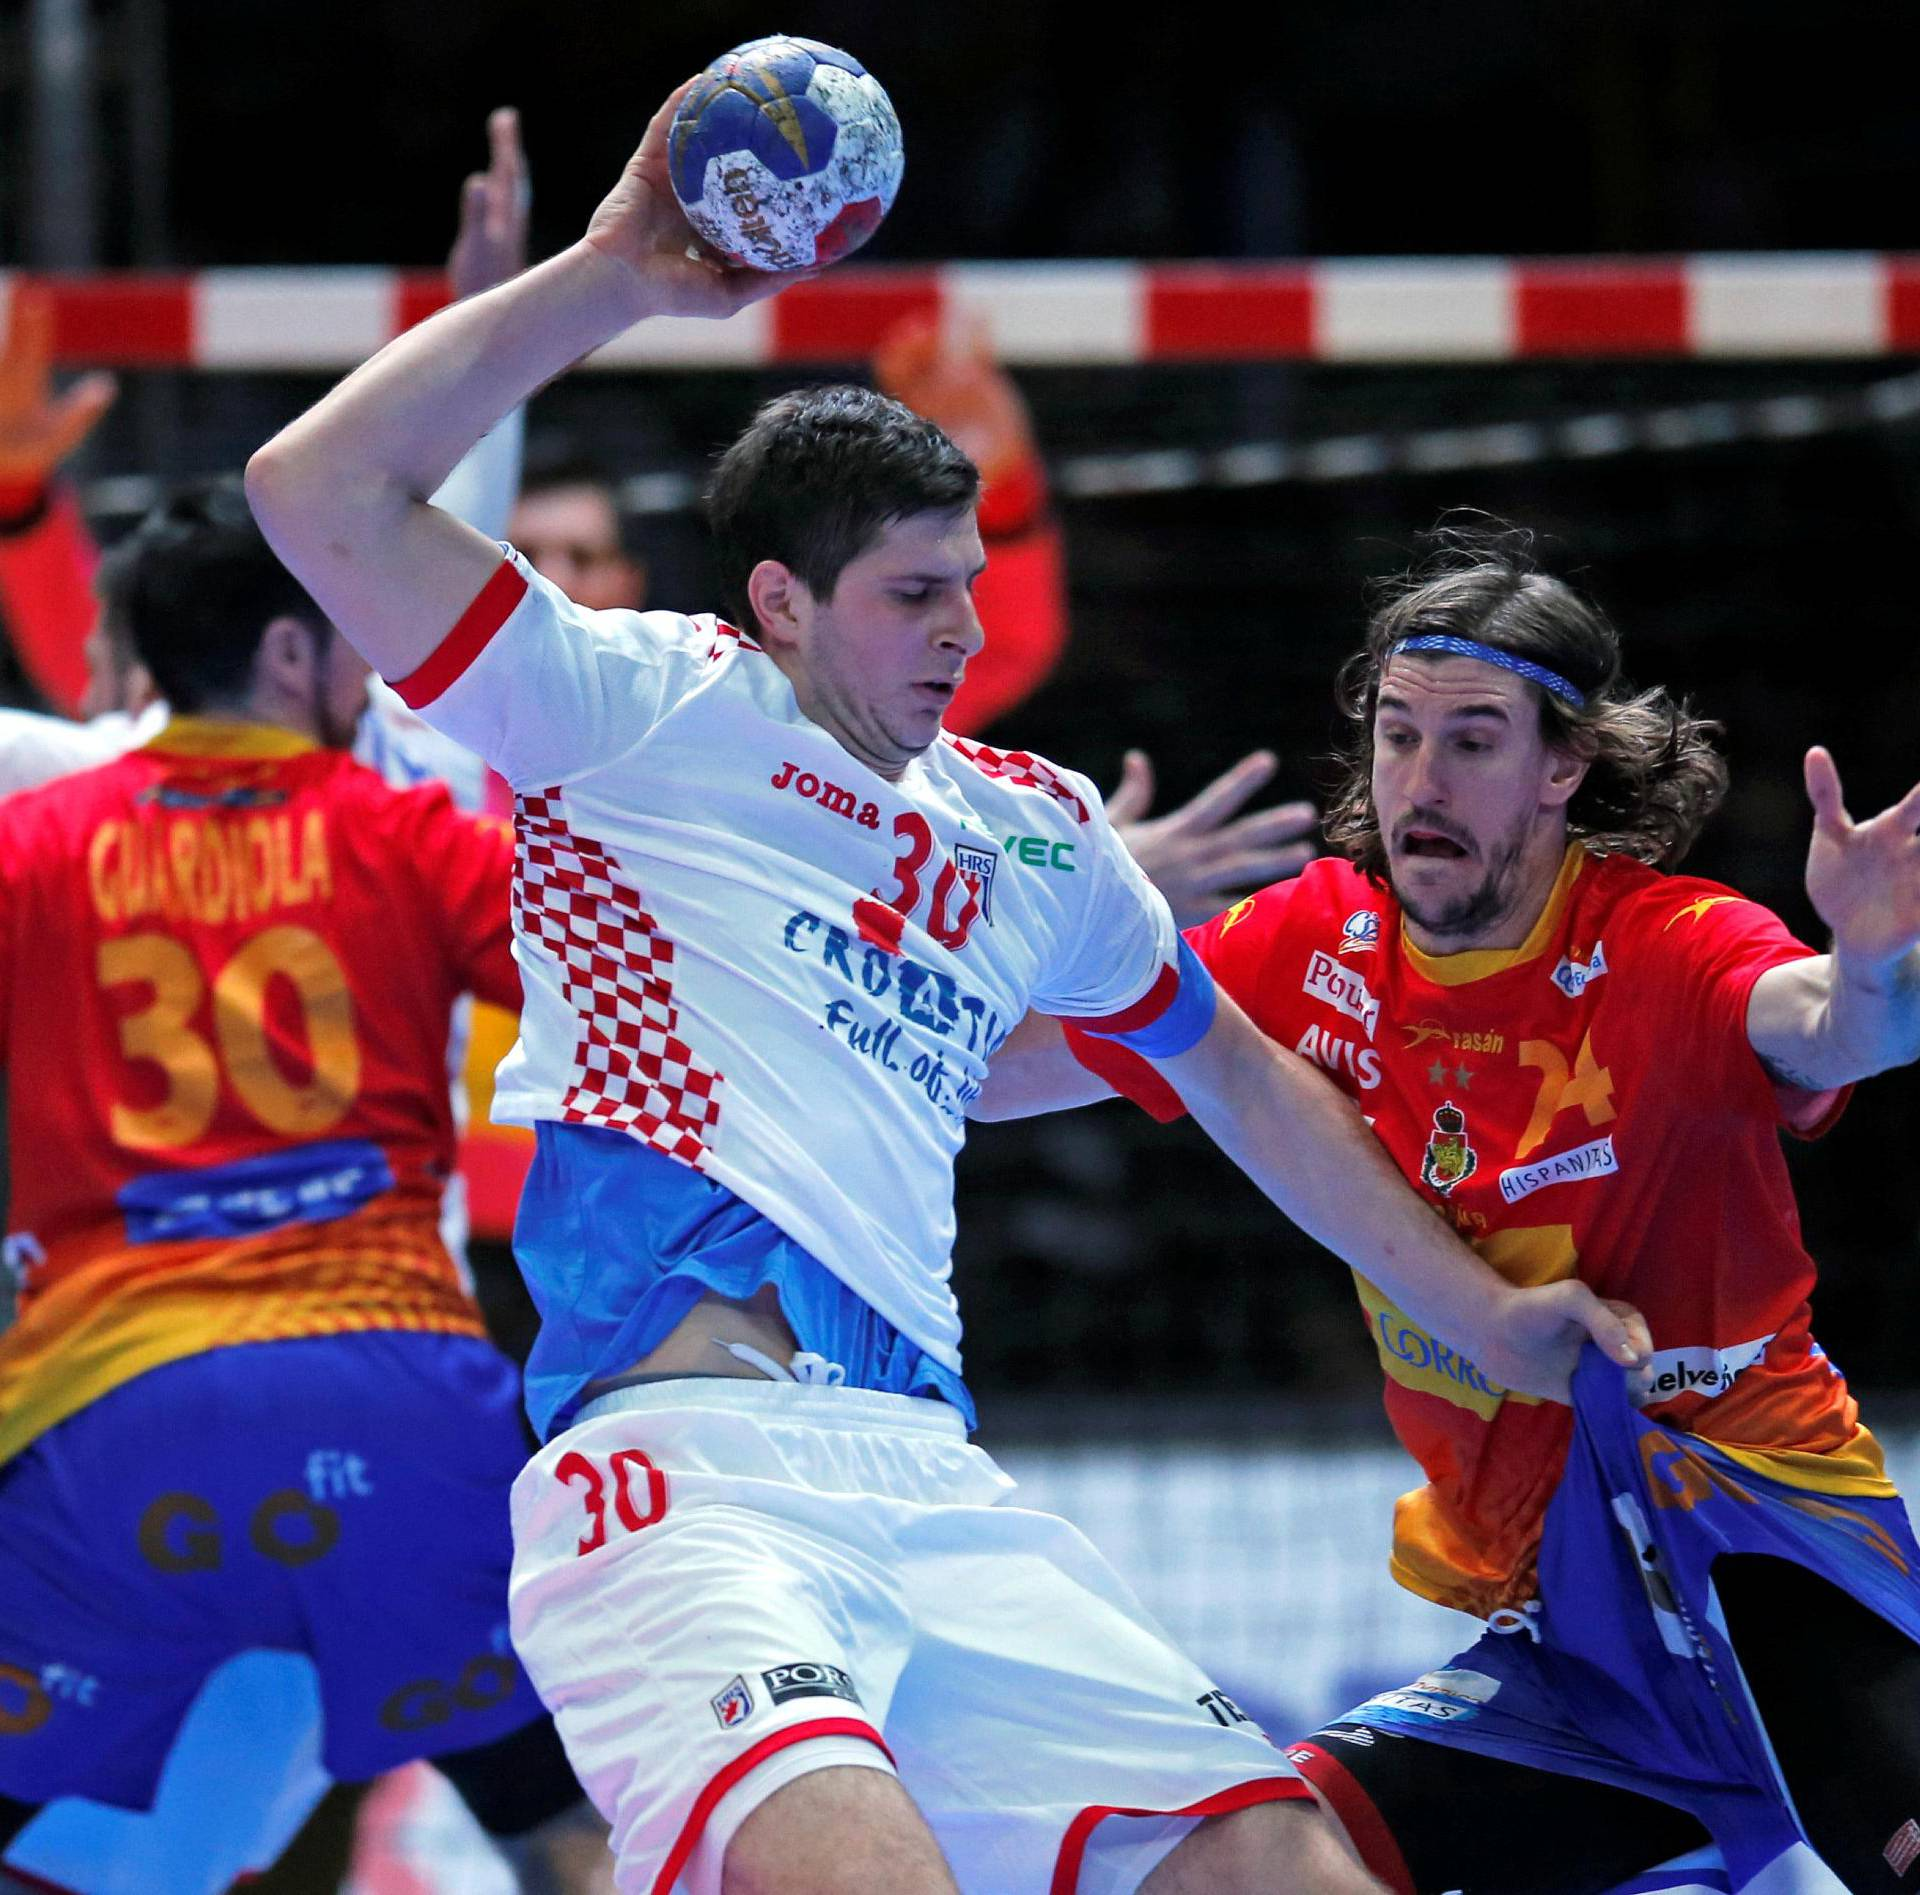 Men's Handball -  Spain v Croatia - 2017 Men's World Championship Quarter-Finals